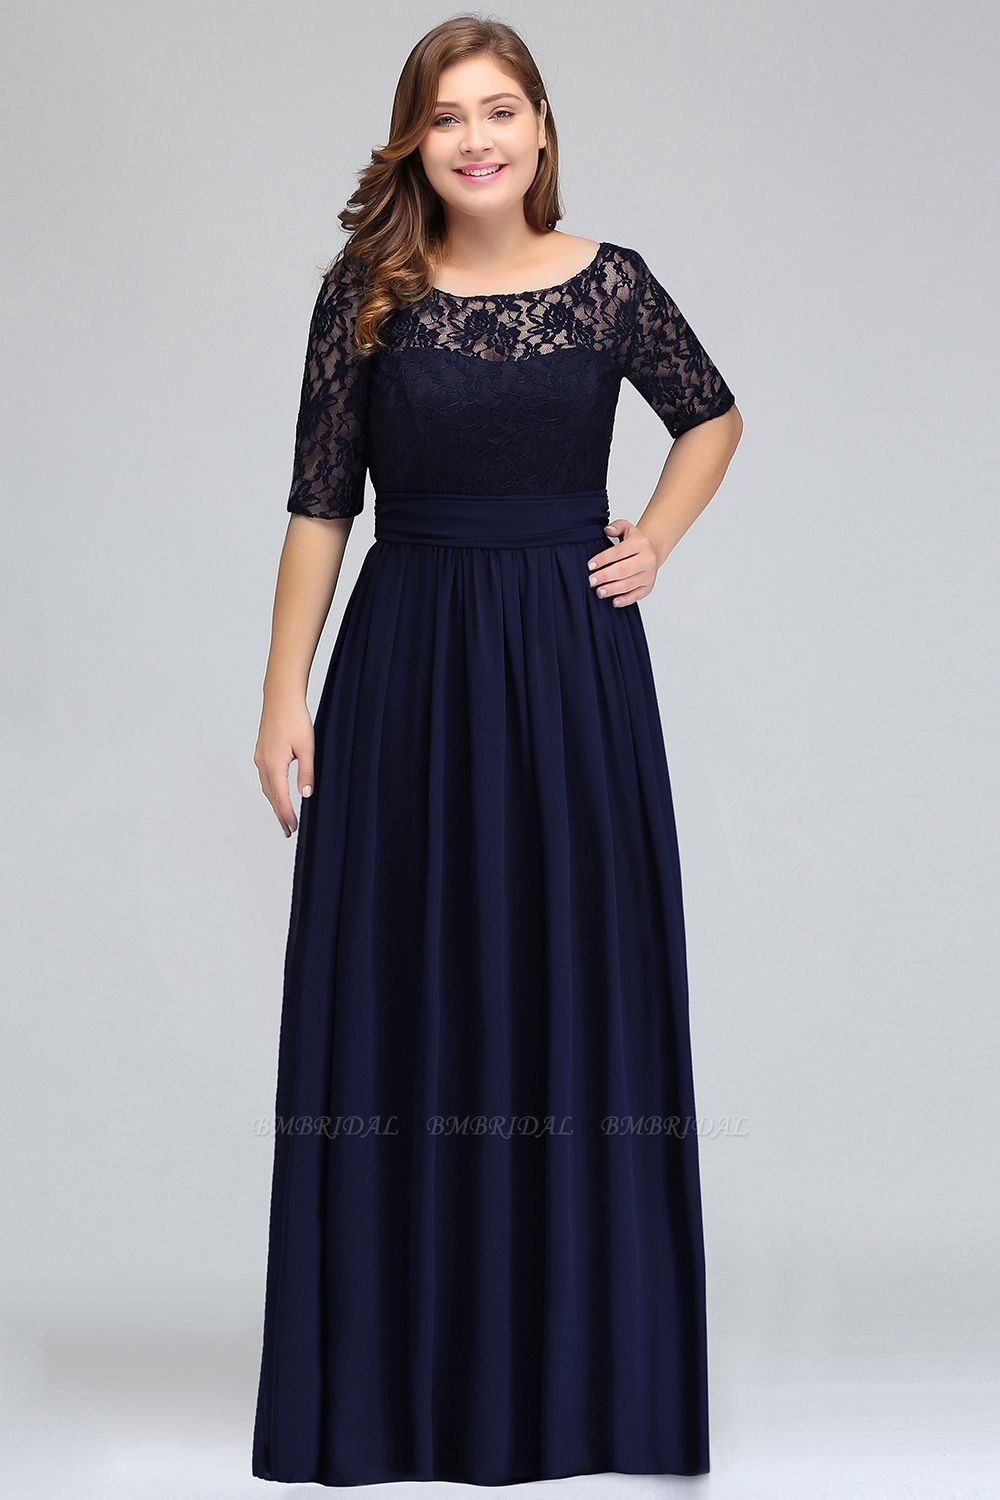 BMbridal Half-Sleeve Lace Long Chiffon Evening Dress